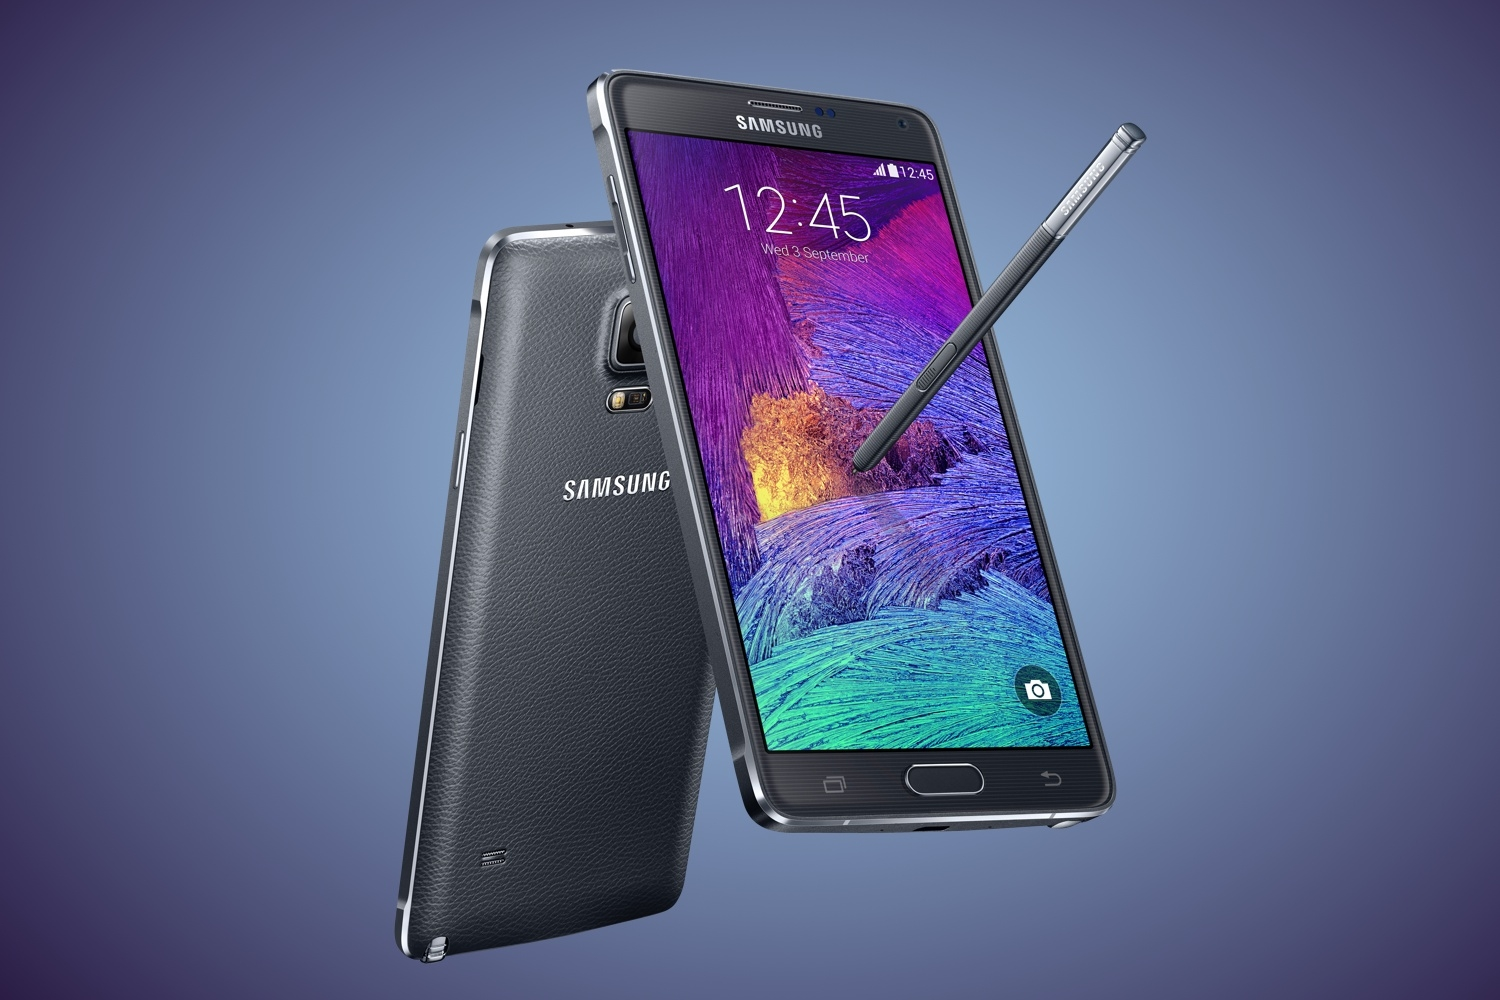 Note 4: The Phablet Renewed